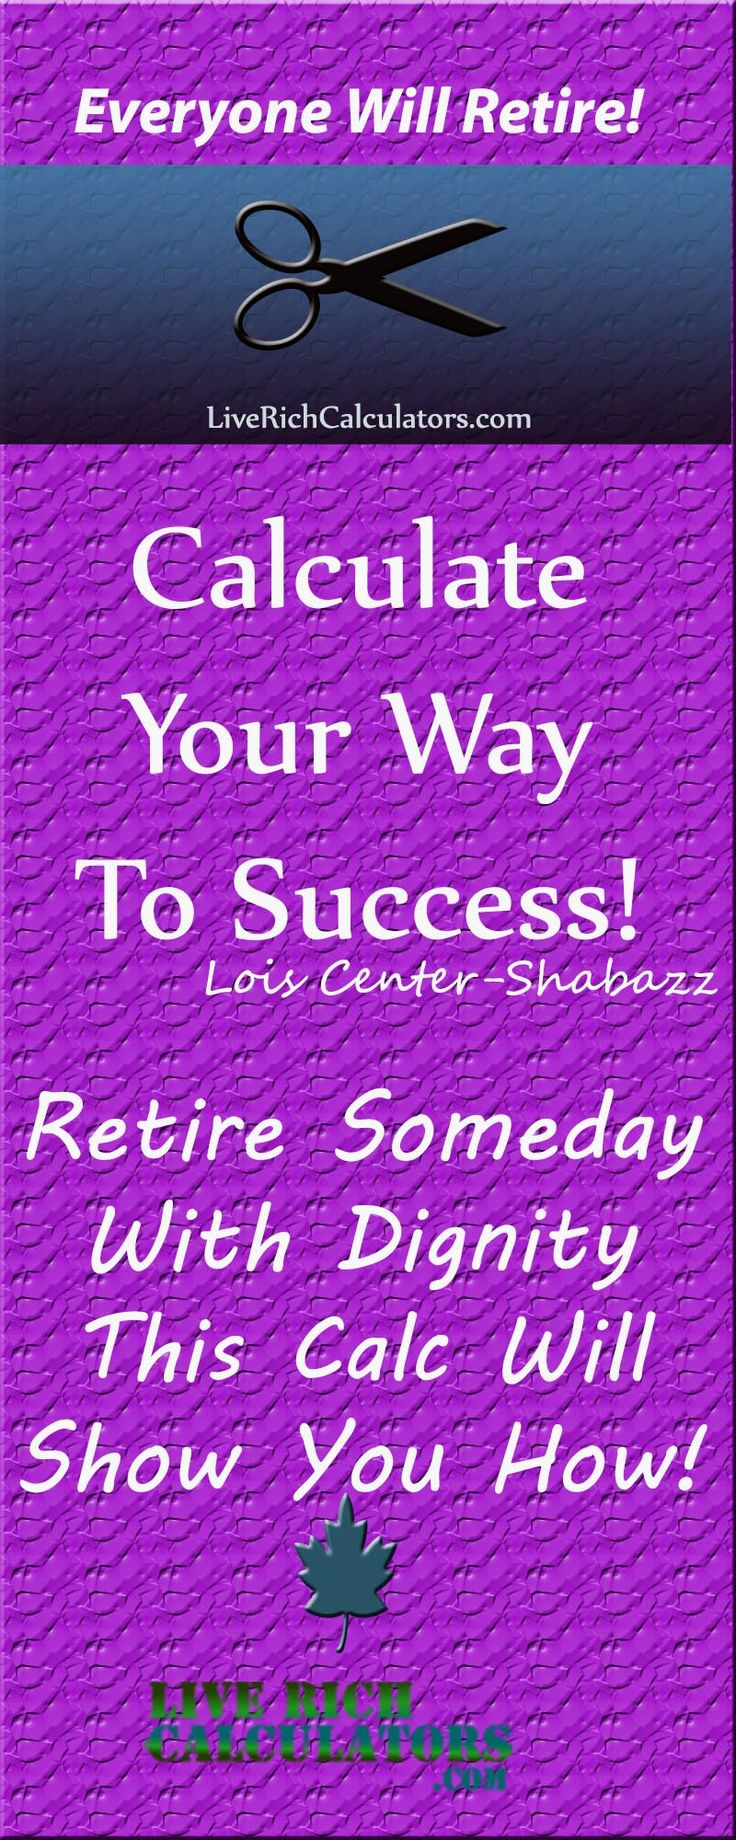 Retirement savings calculator. Use this financial calculator now! http://www.liverichcalculators.com/retirement-savings-calculator.html